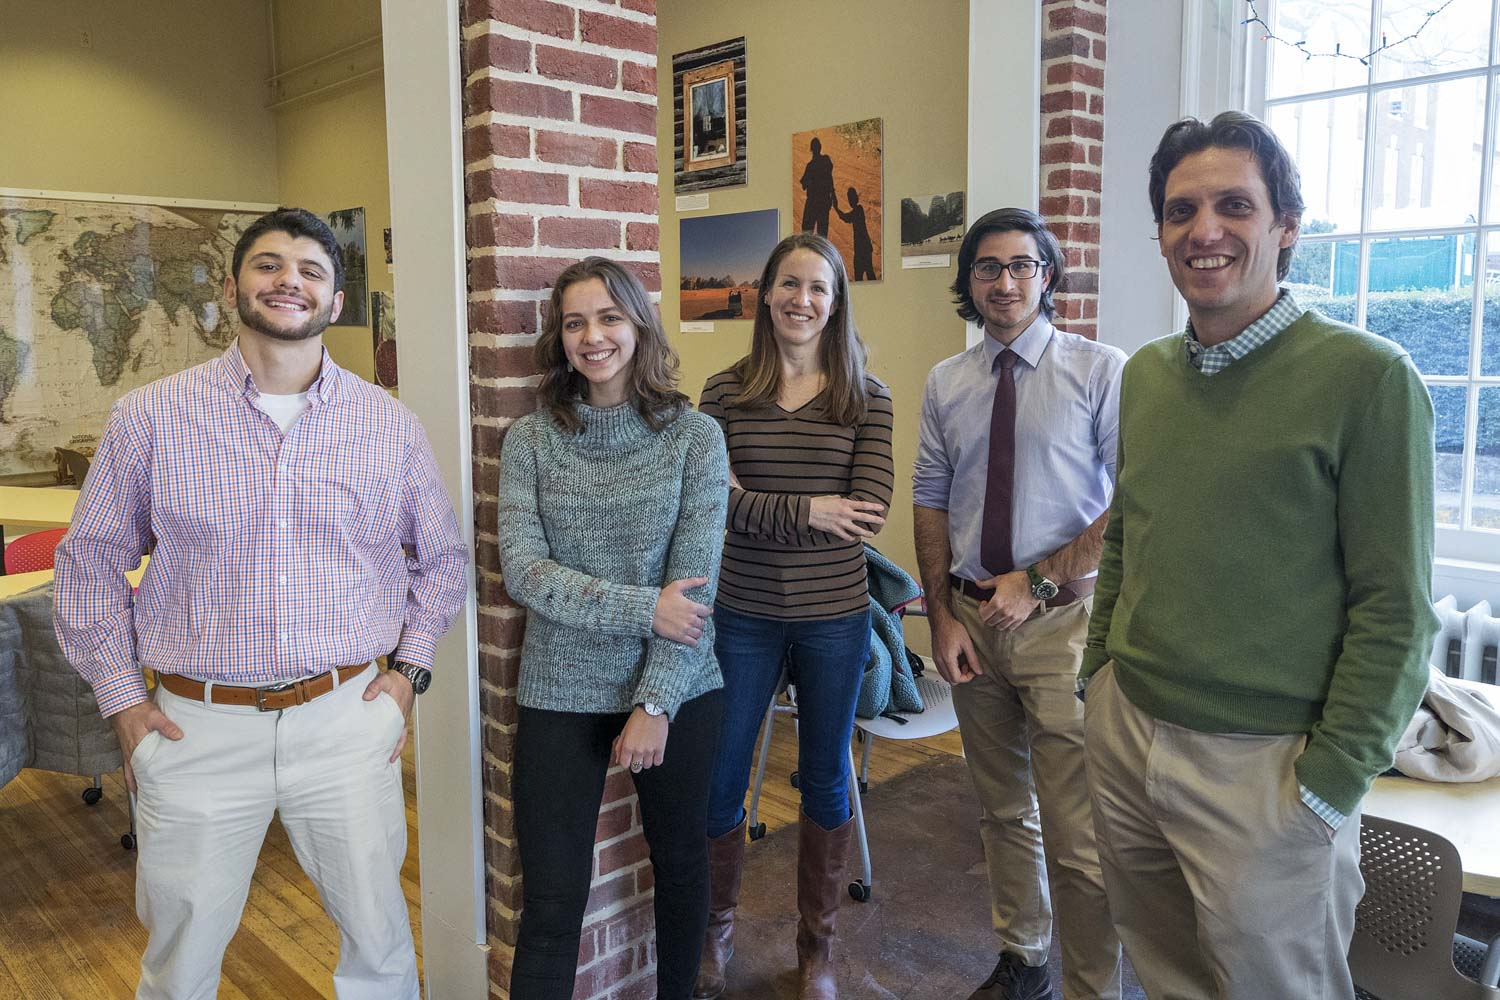 Dr. Scott Heysell, far right, and some of the members of his research team: from left, medical student Herman Pfaeffle, undergraduate student Alena Titova, Dr. Megan Gray and medical student Art Kulatti.